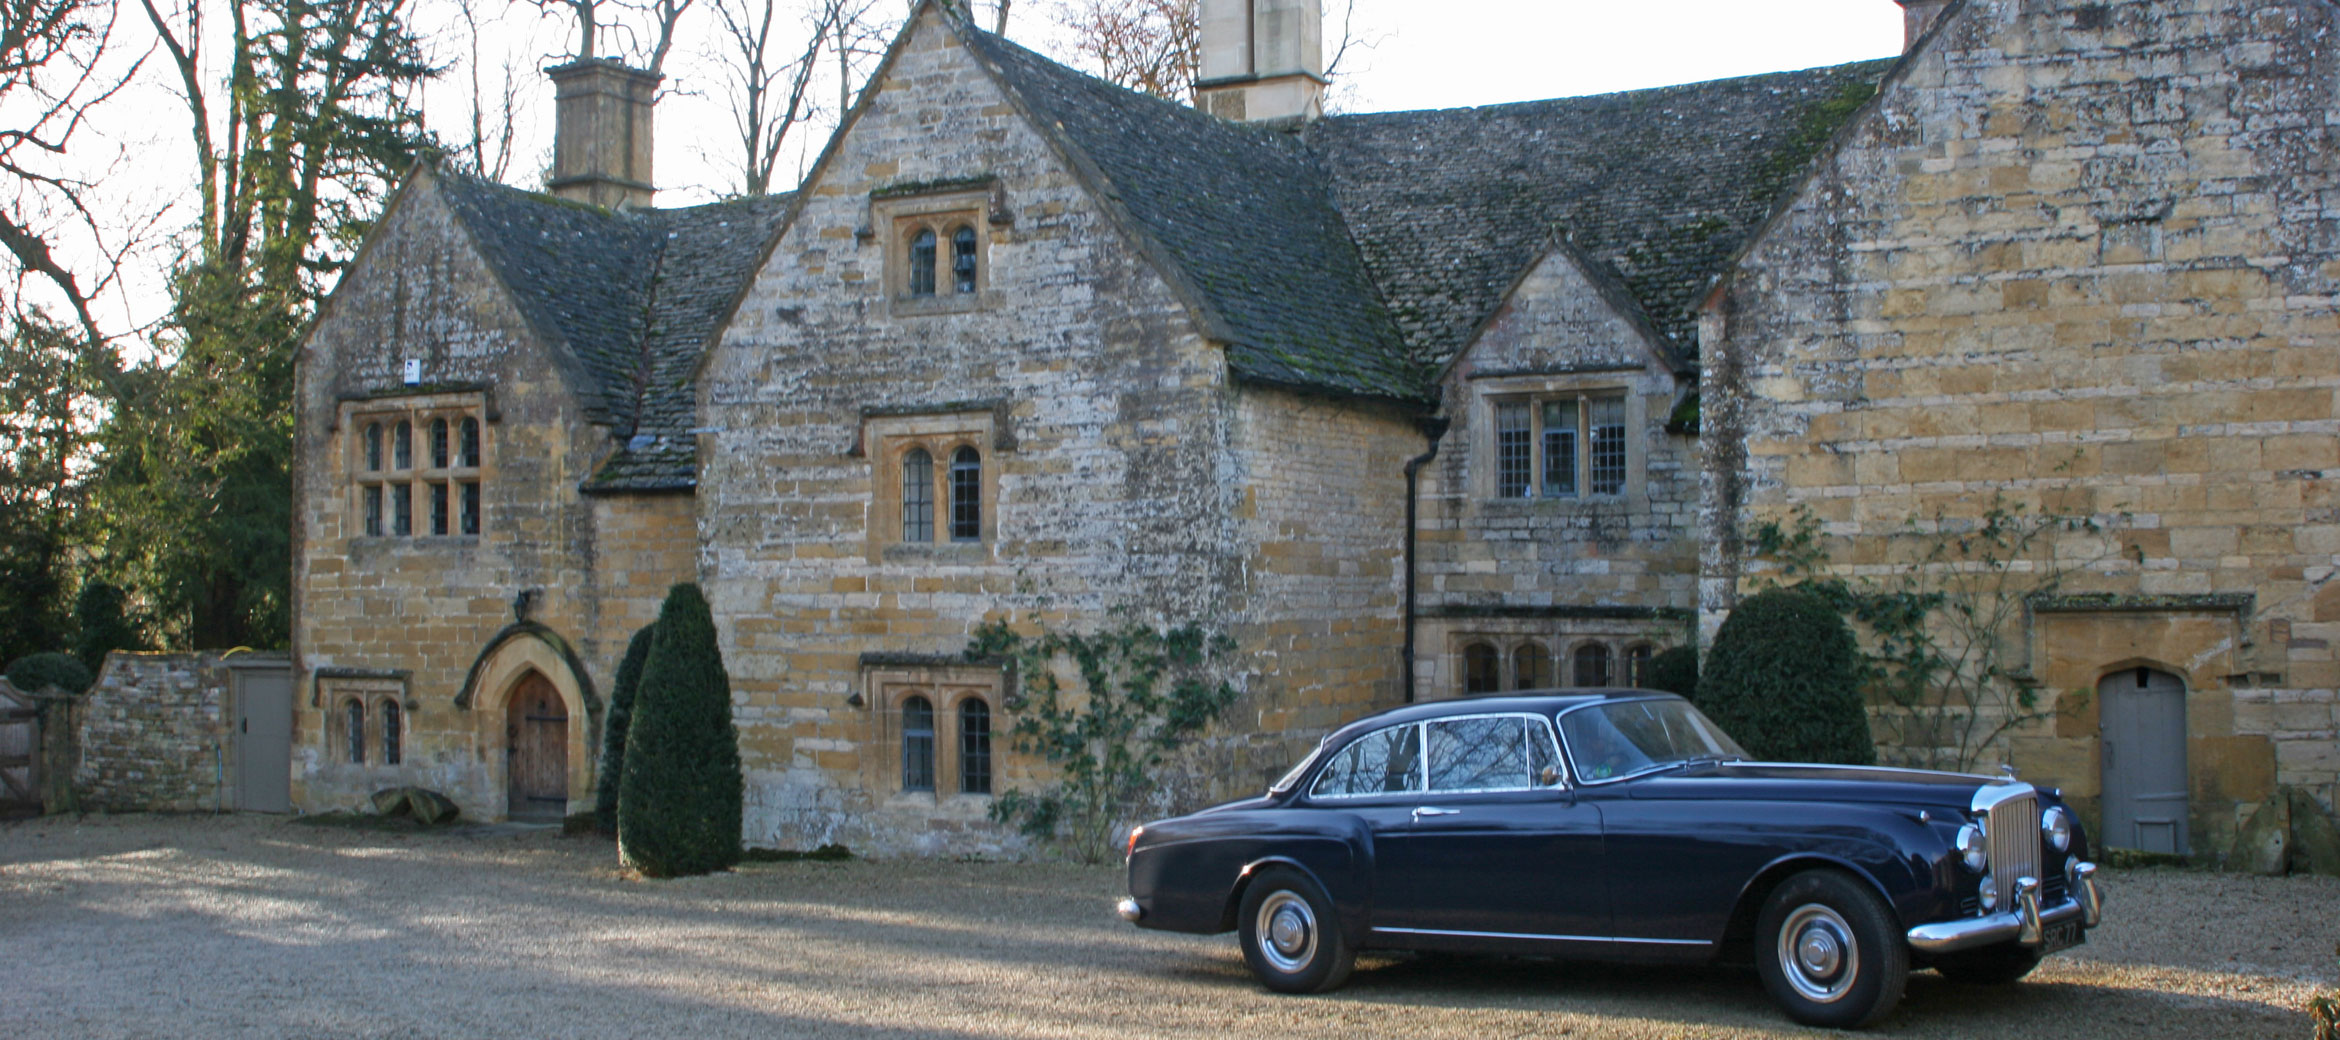 Temple-Guiting-Manor